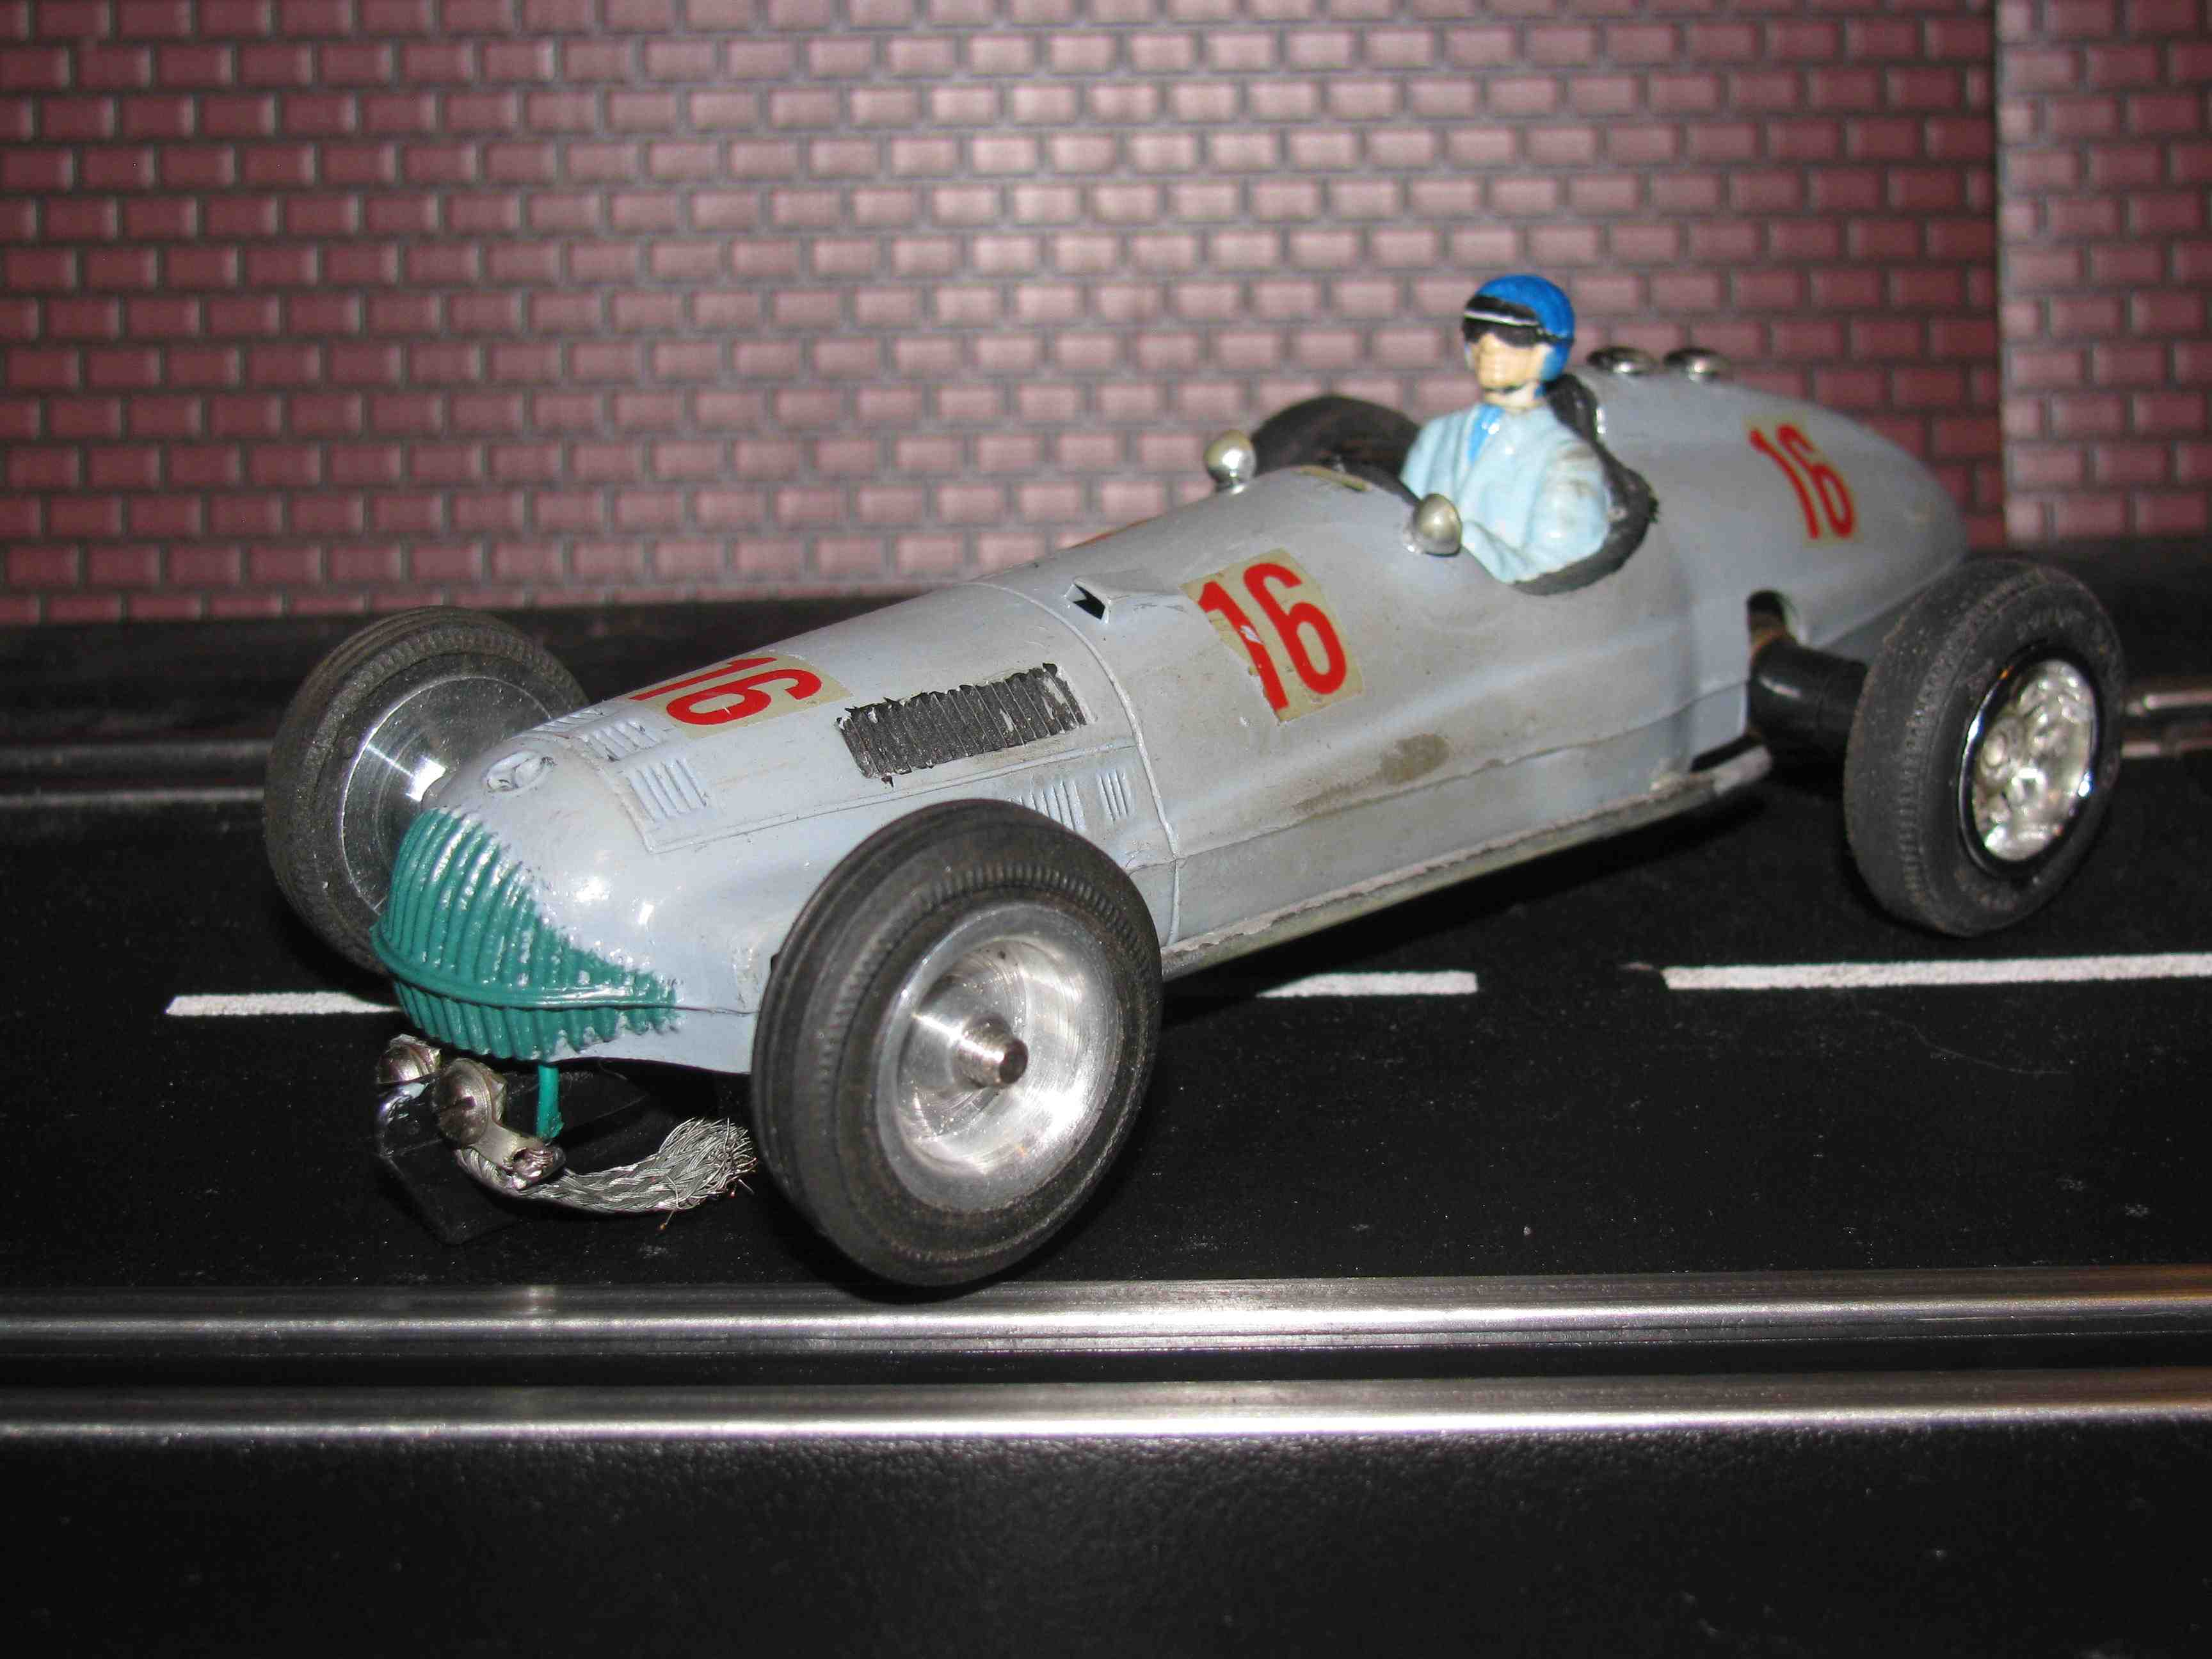 * SOLD * 1938 Mercedes-Benz W154 Slot Car 1/32 Scale Car #16